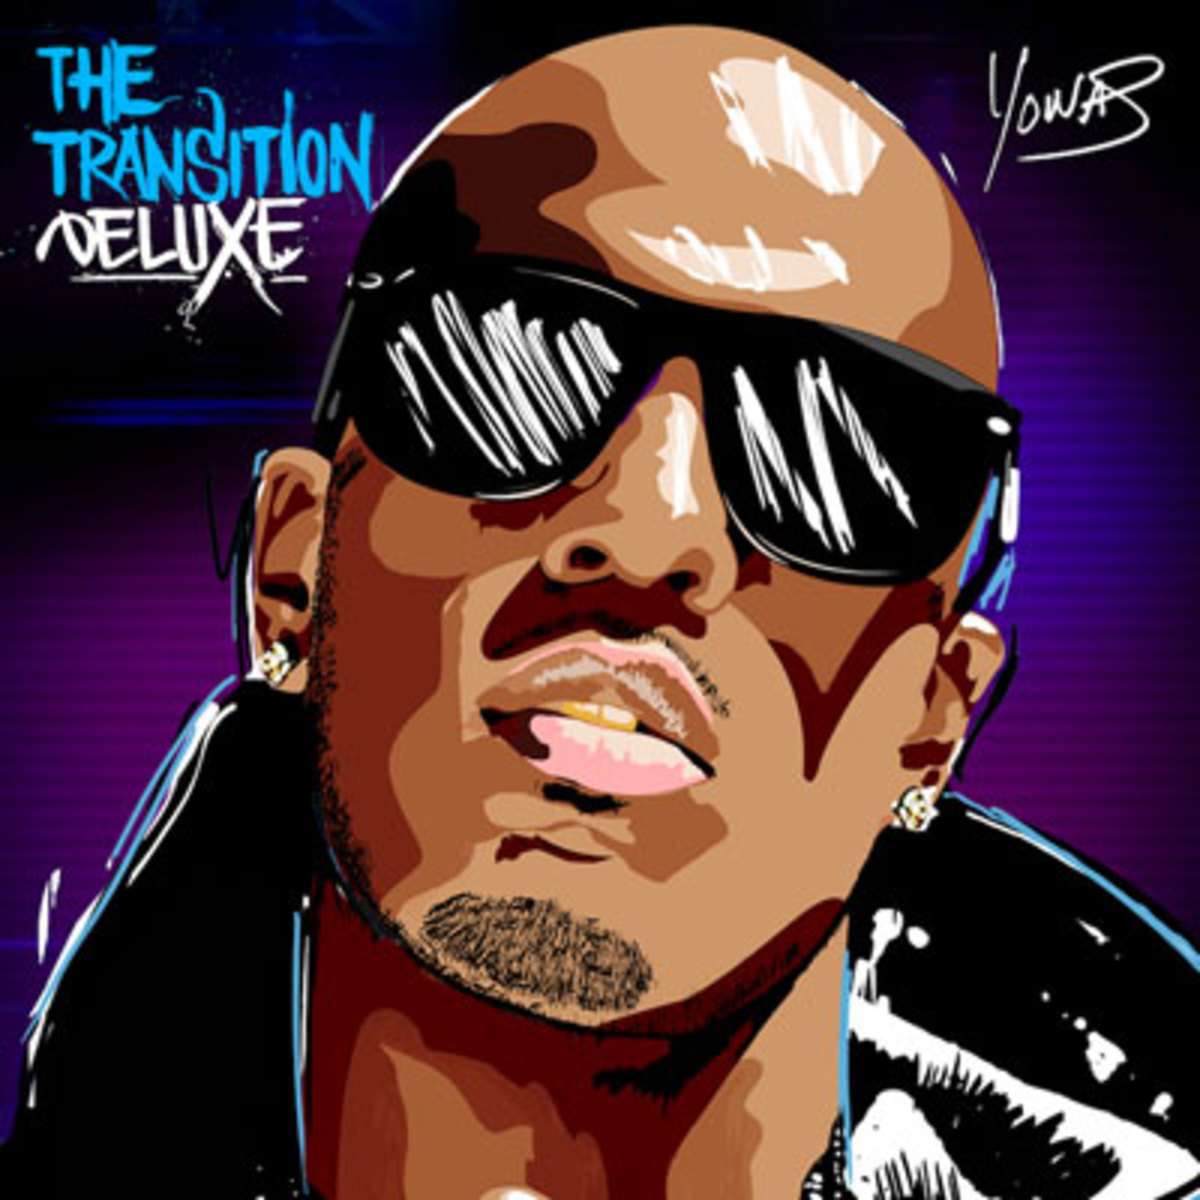 yonas-thetransitiondeluxe.jpg